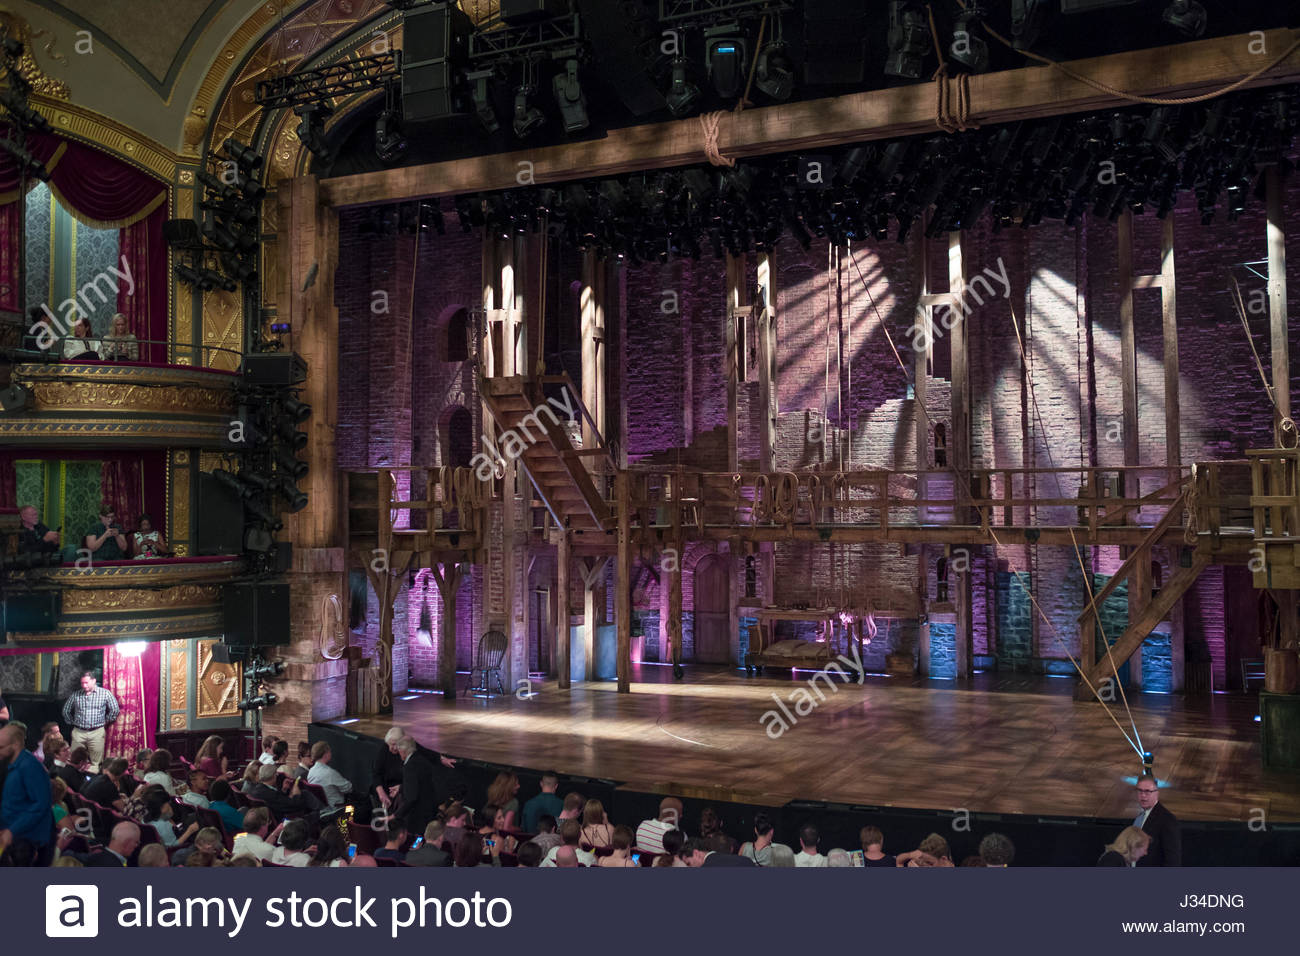 Stage for the Broadway musical Hamilton in the Richard Rodgers Theatre, W 46th St, New York, NY, USA - Stock Image